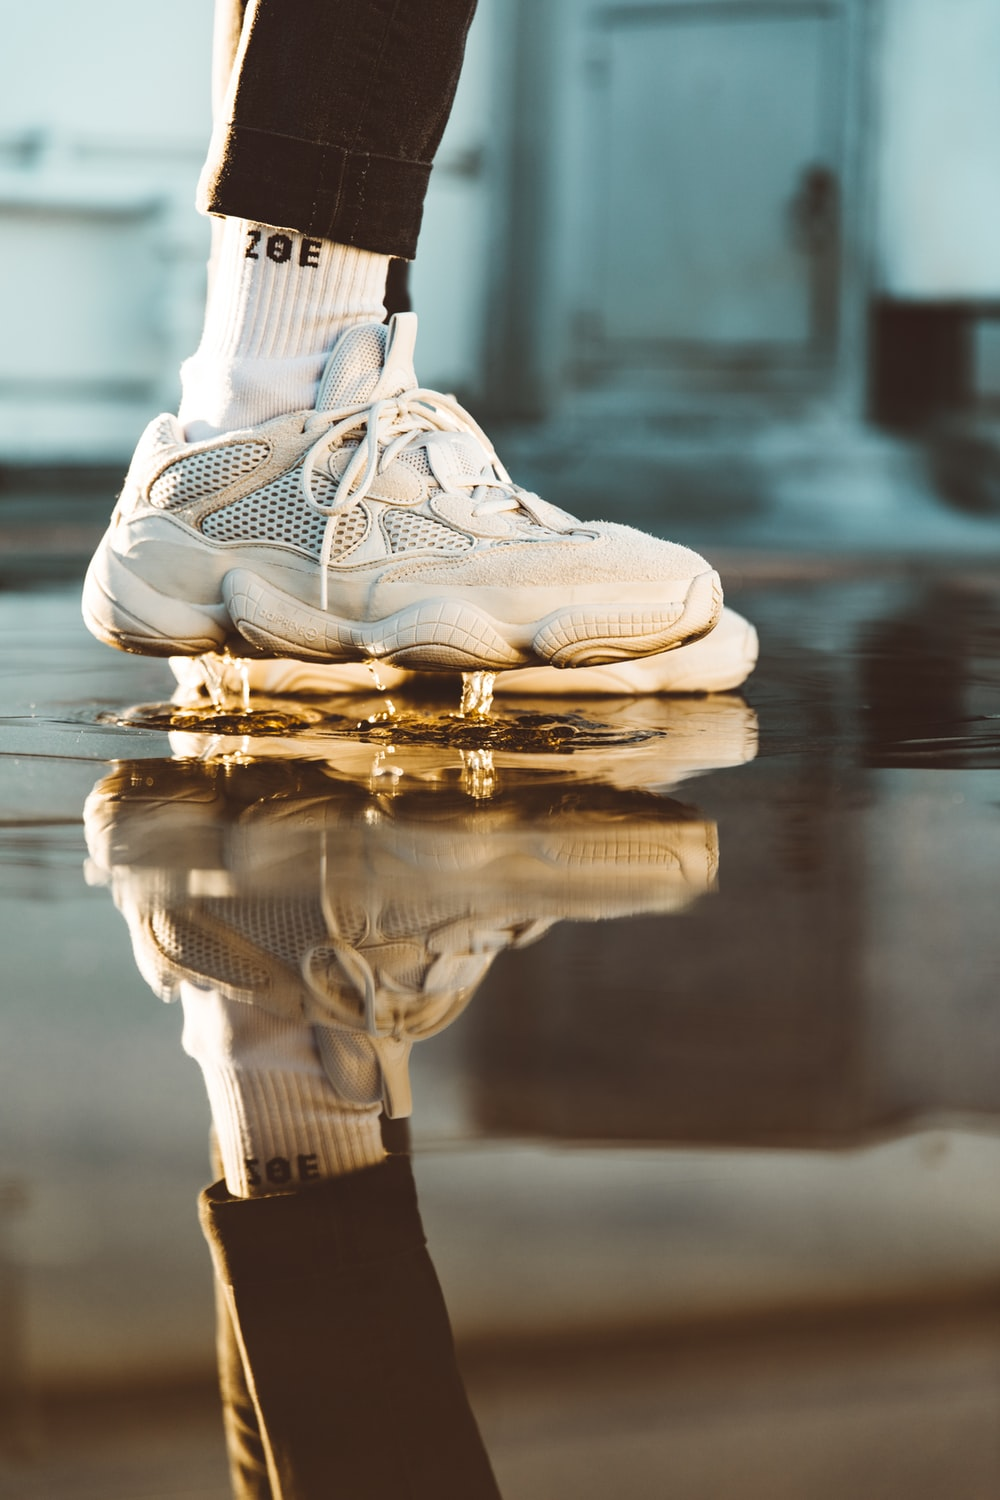 person wearing white basketball shoes